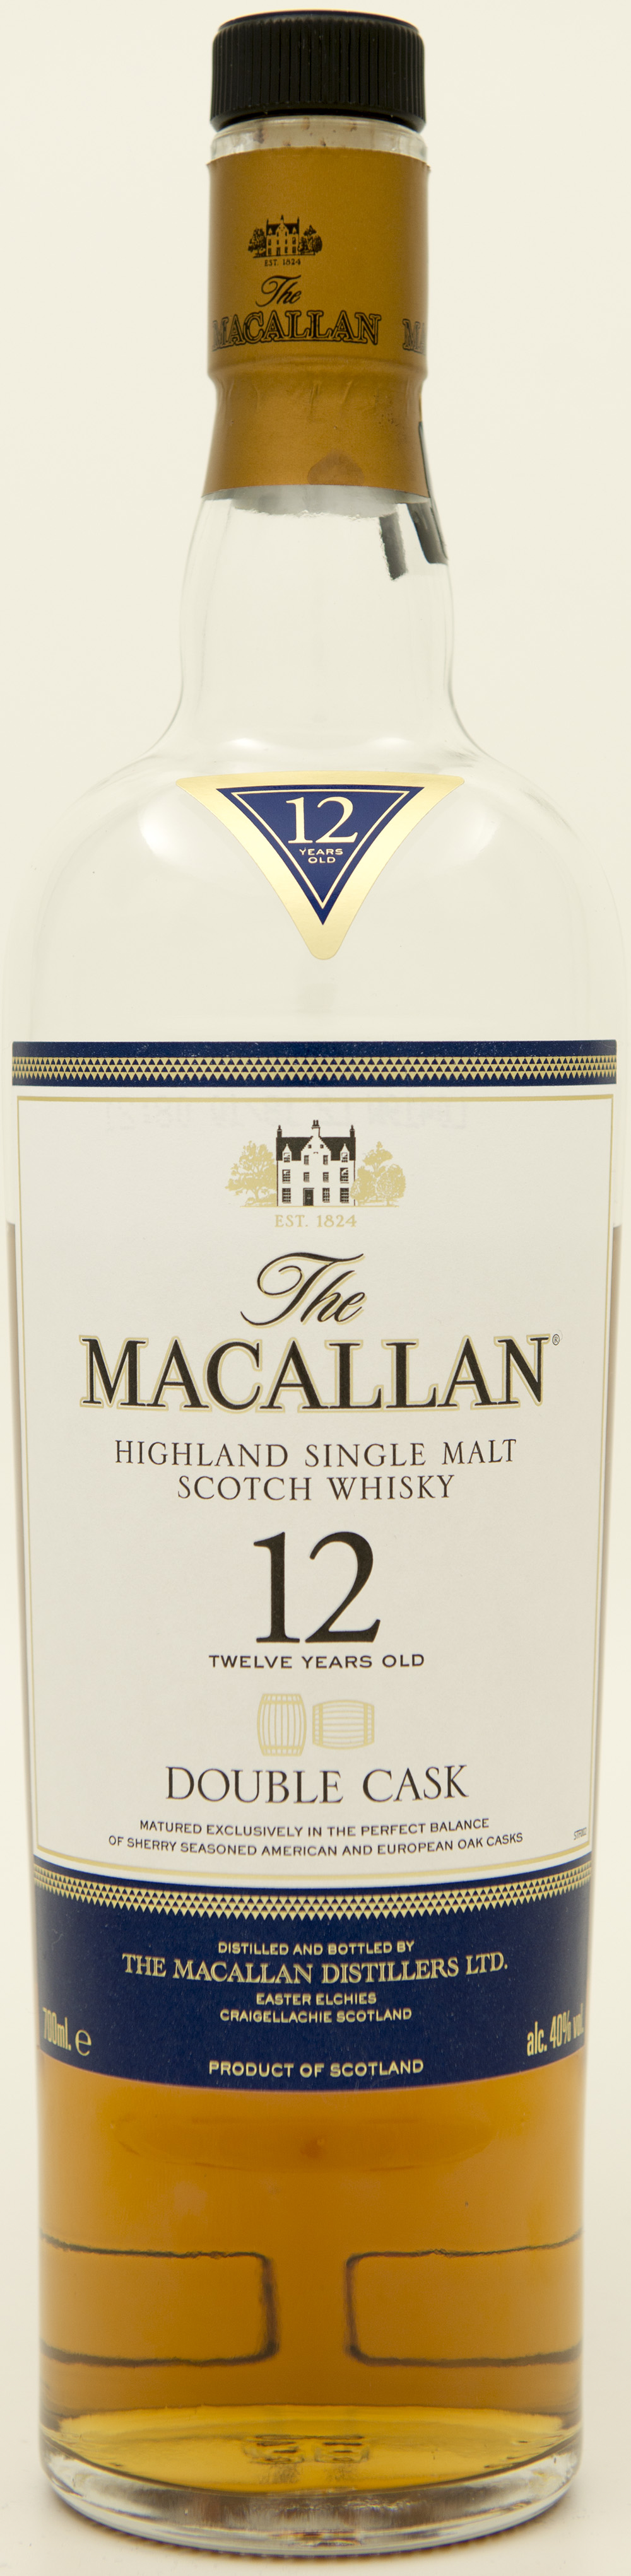 Billede: DSC_3653 - The MacAllan 12 Double Cask - bottle front.jpg